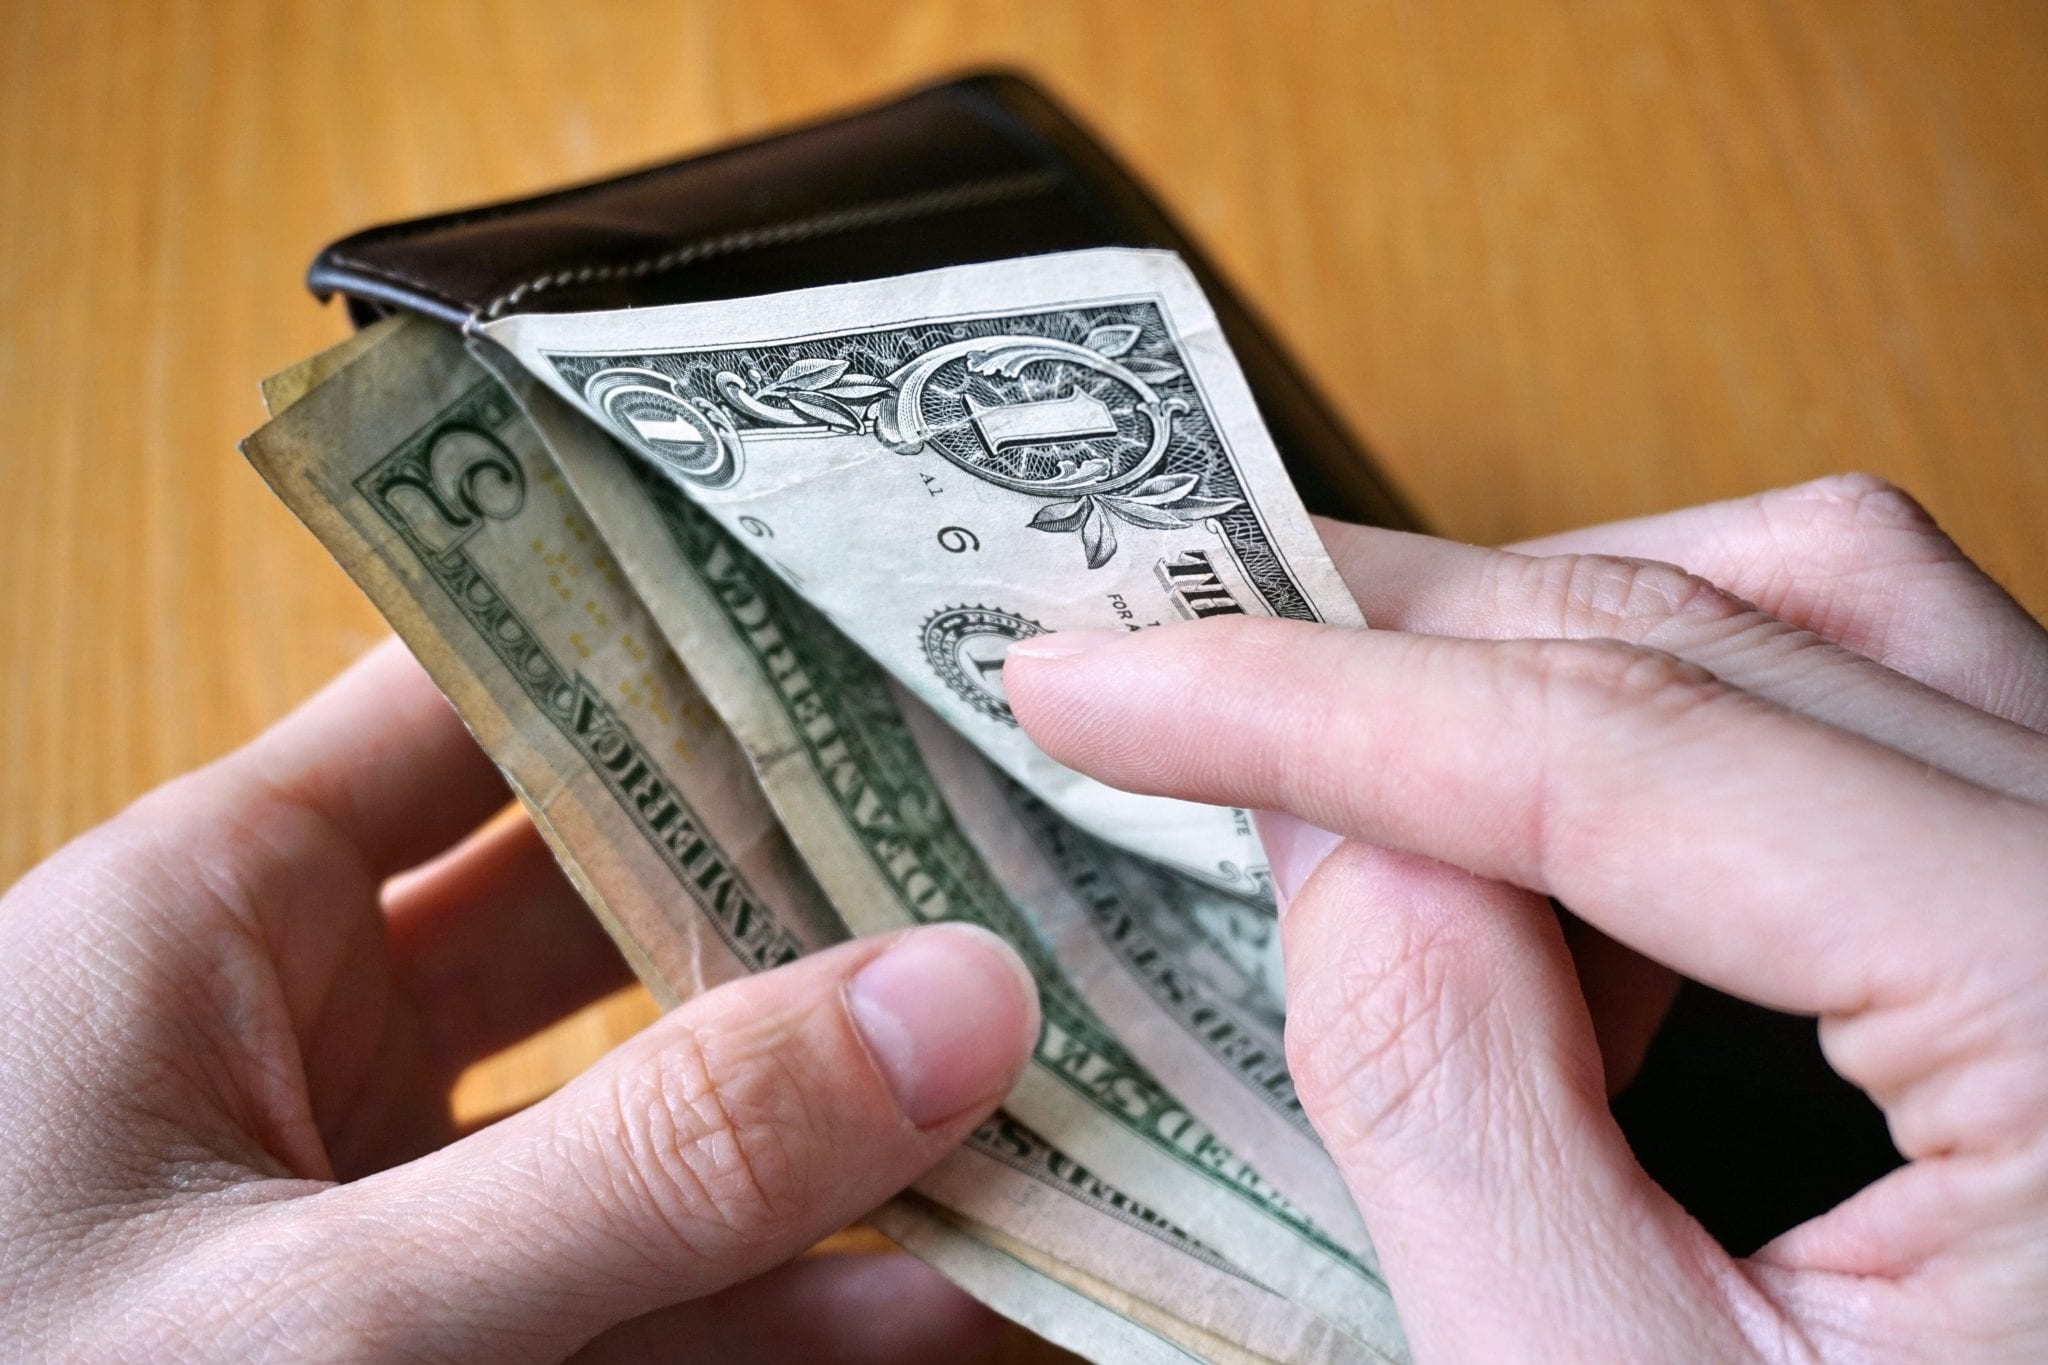 taking cash from a wallet